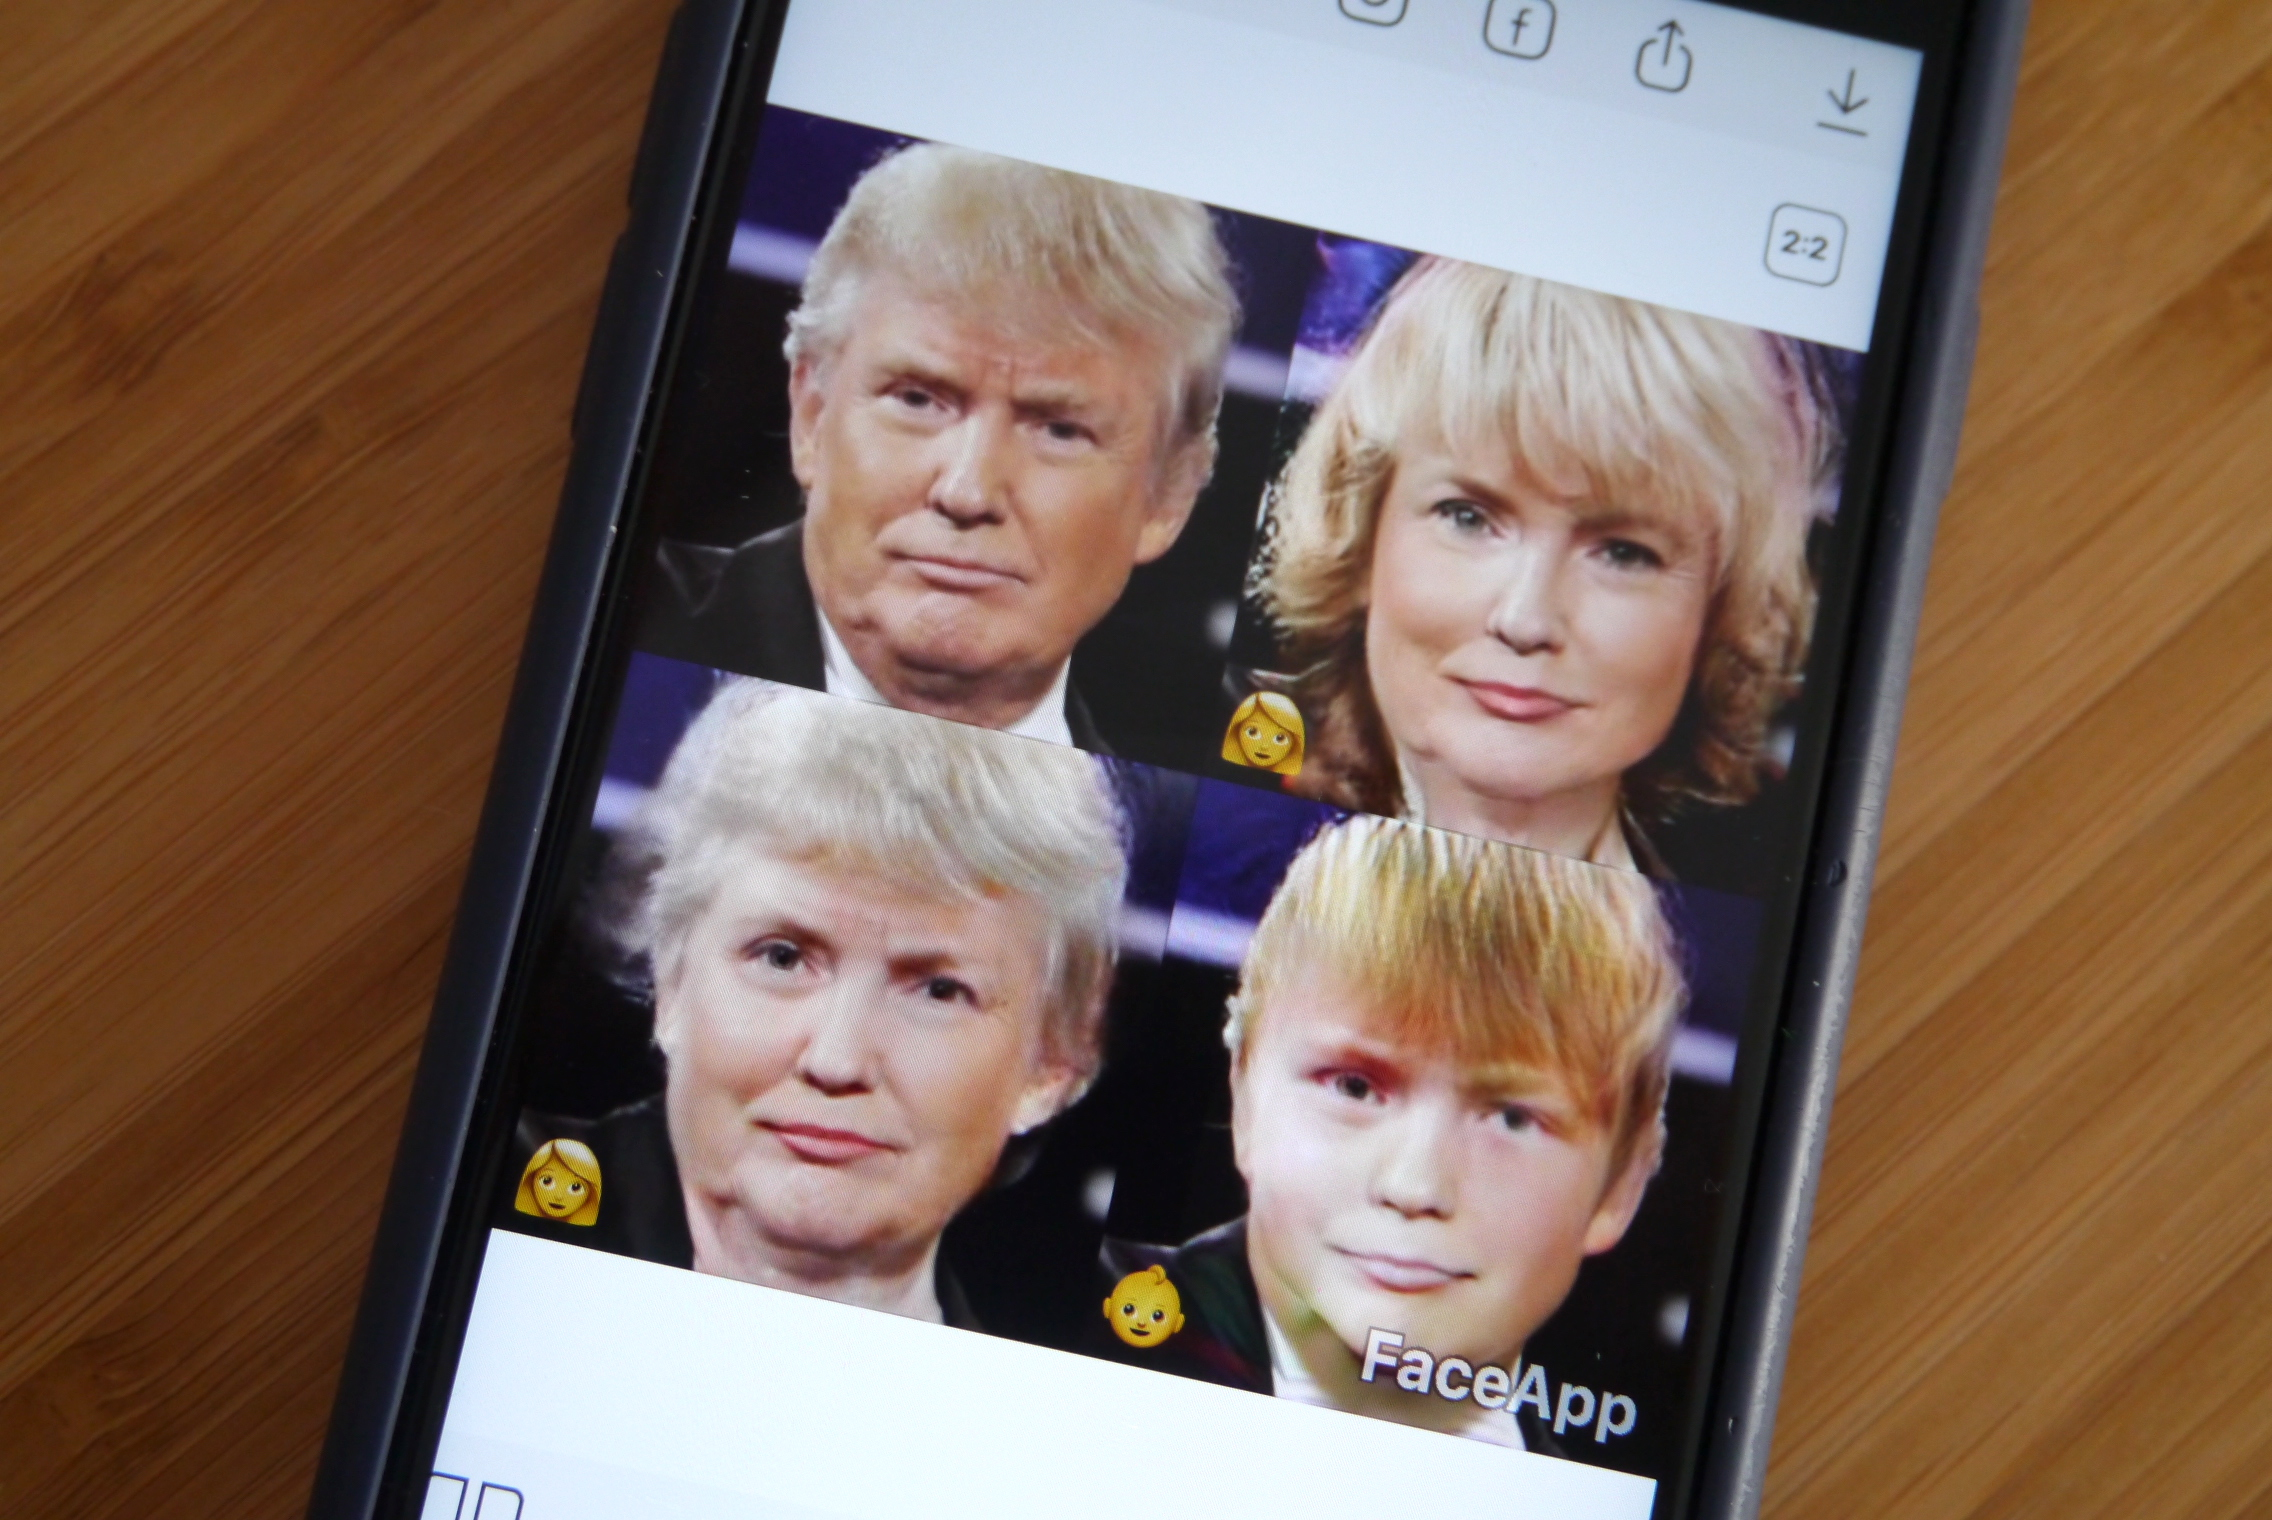 AI picture editor FaceApp goes viral once more on iOS, raises